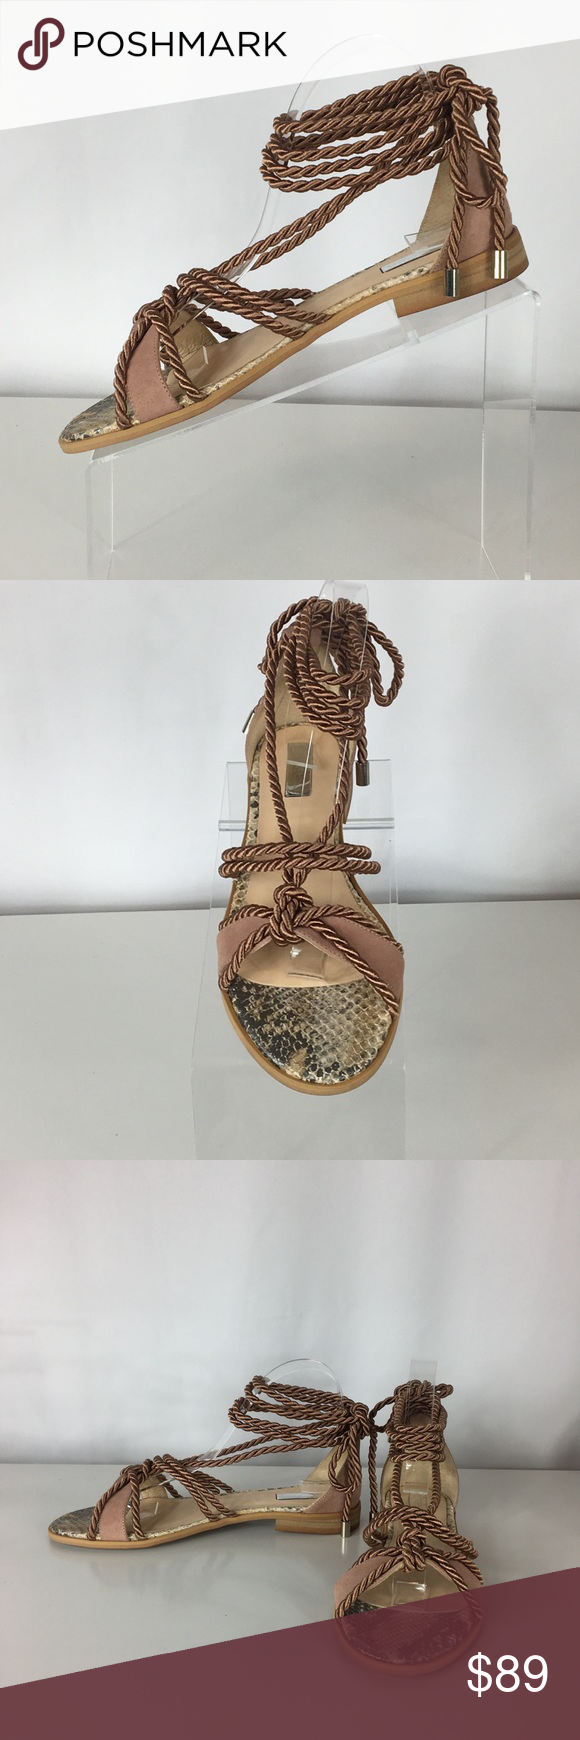 f3eaf7f4147 NIB Anthropologie- Elysess Rope Gladiator Sandals NEW IN BOX   SOLD OUT at  Anthropologie-